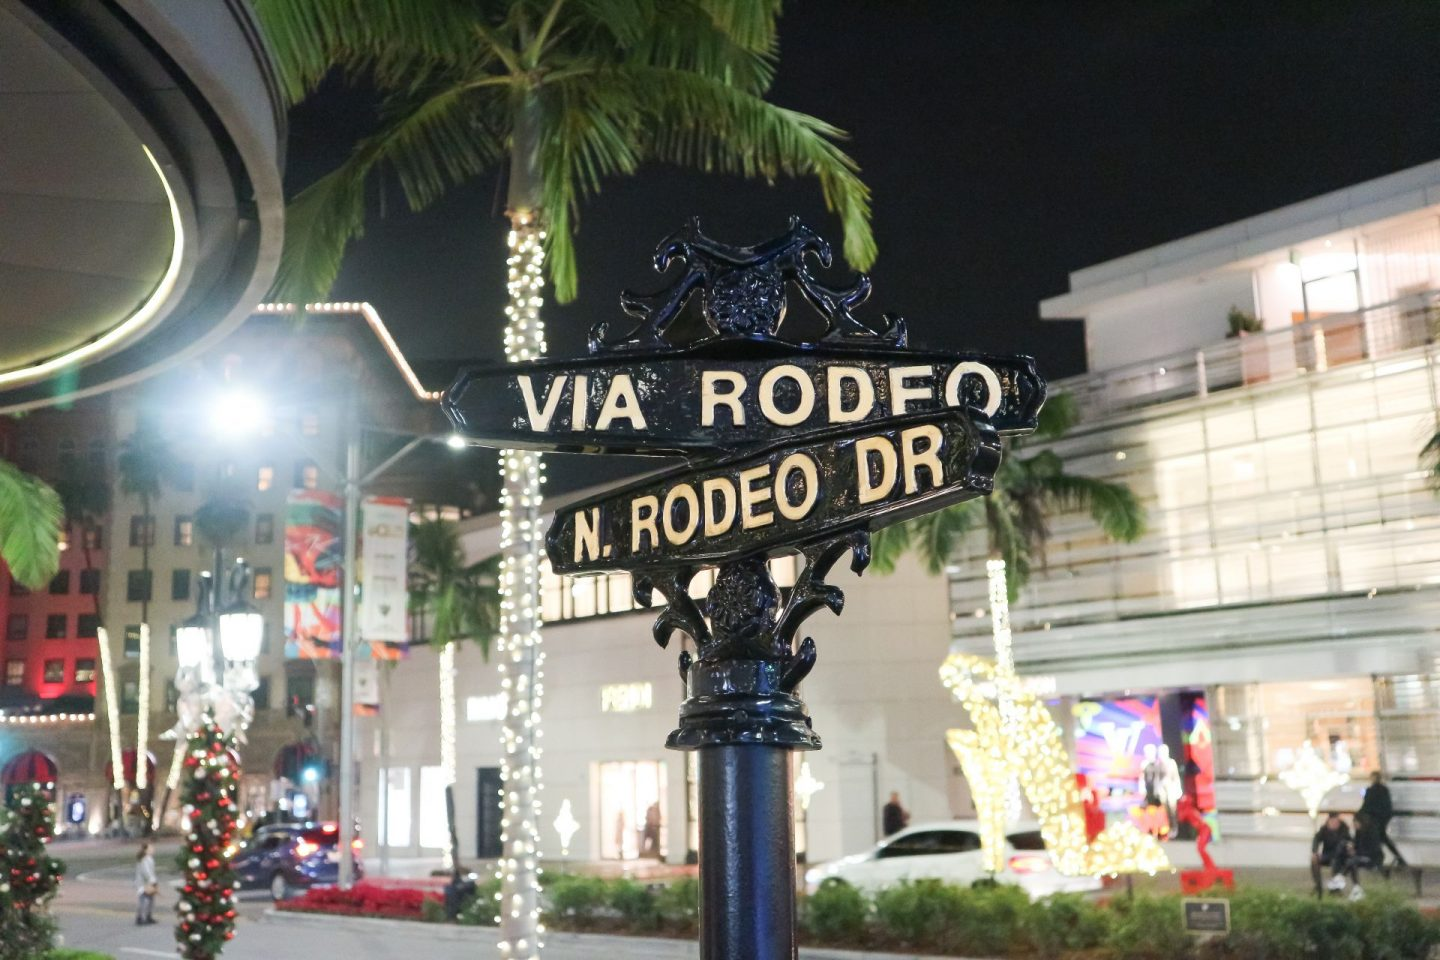 Rodeo Drive holiday decor